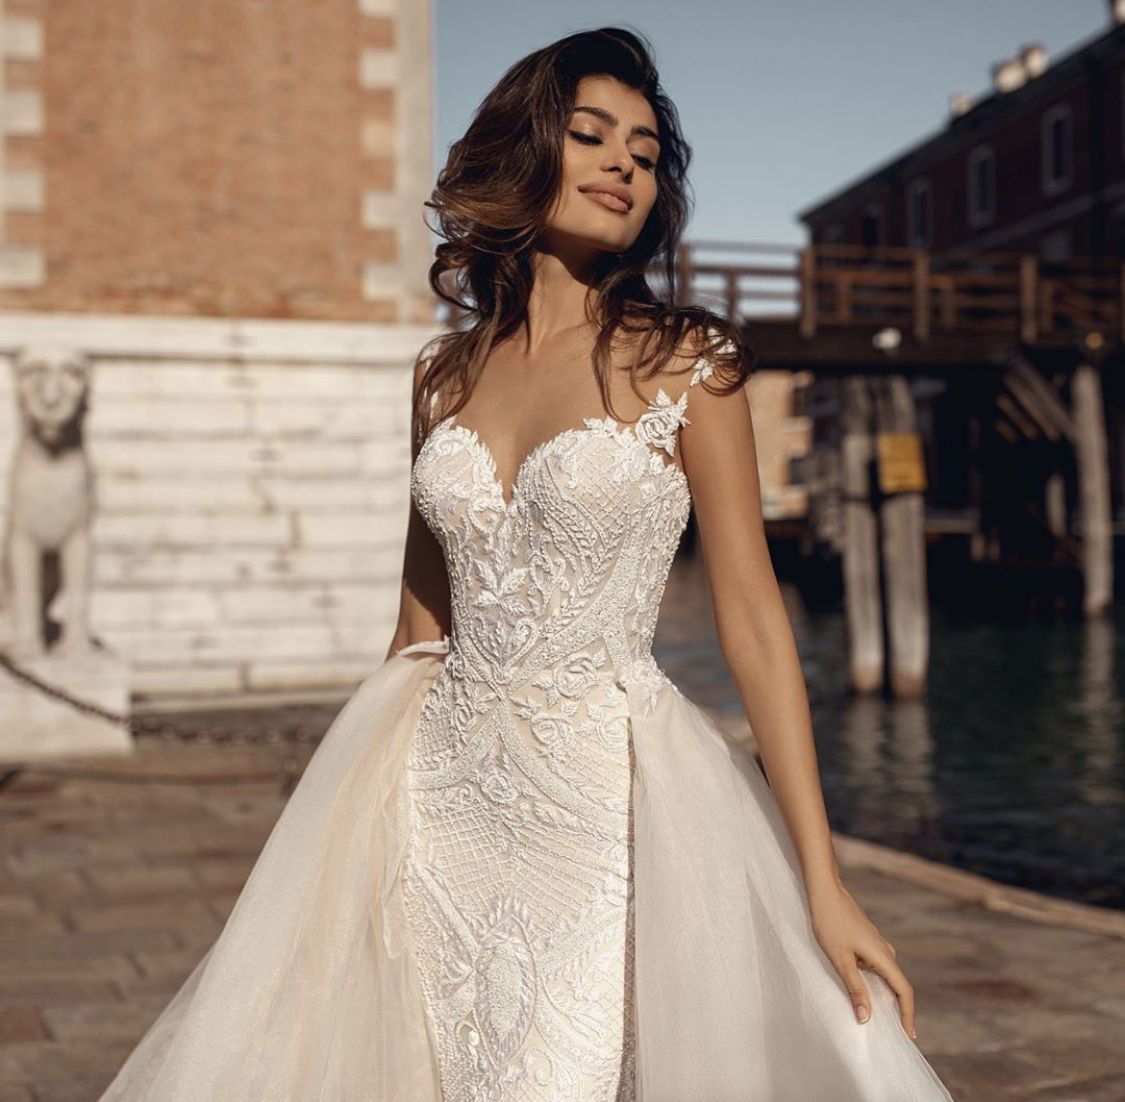 How Perfect Is This Jade Style From Venice Flood Collection Chicagowedding Longdress Classy Vi In 2020 Wedding Dresses Wedding Dress Couture Blush Wedding Gown